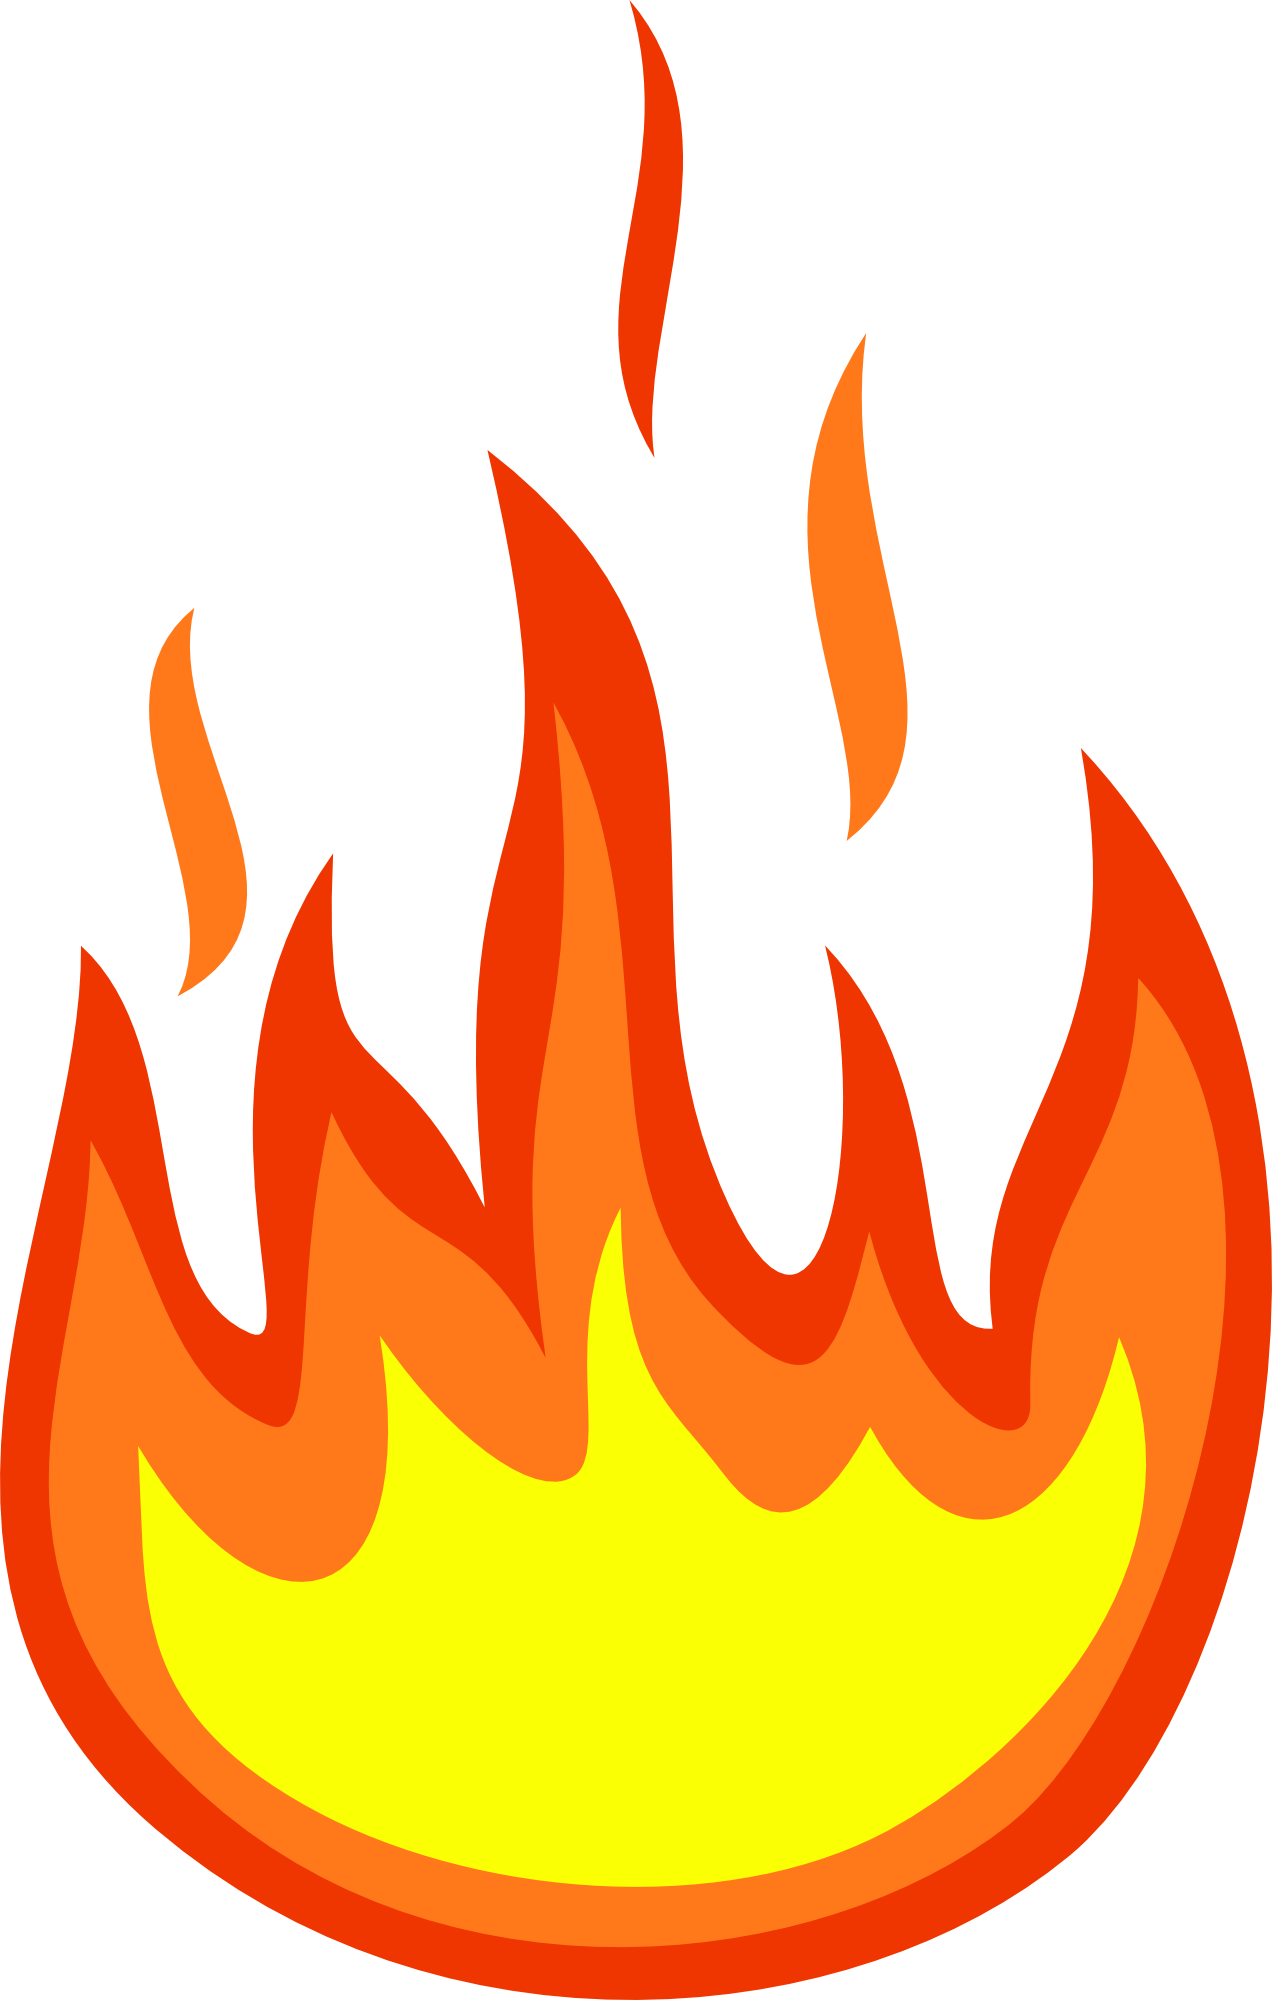 Image fire cutie mark. Flame clipart little